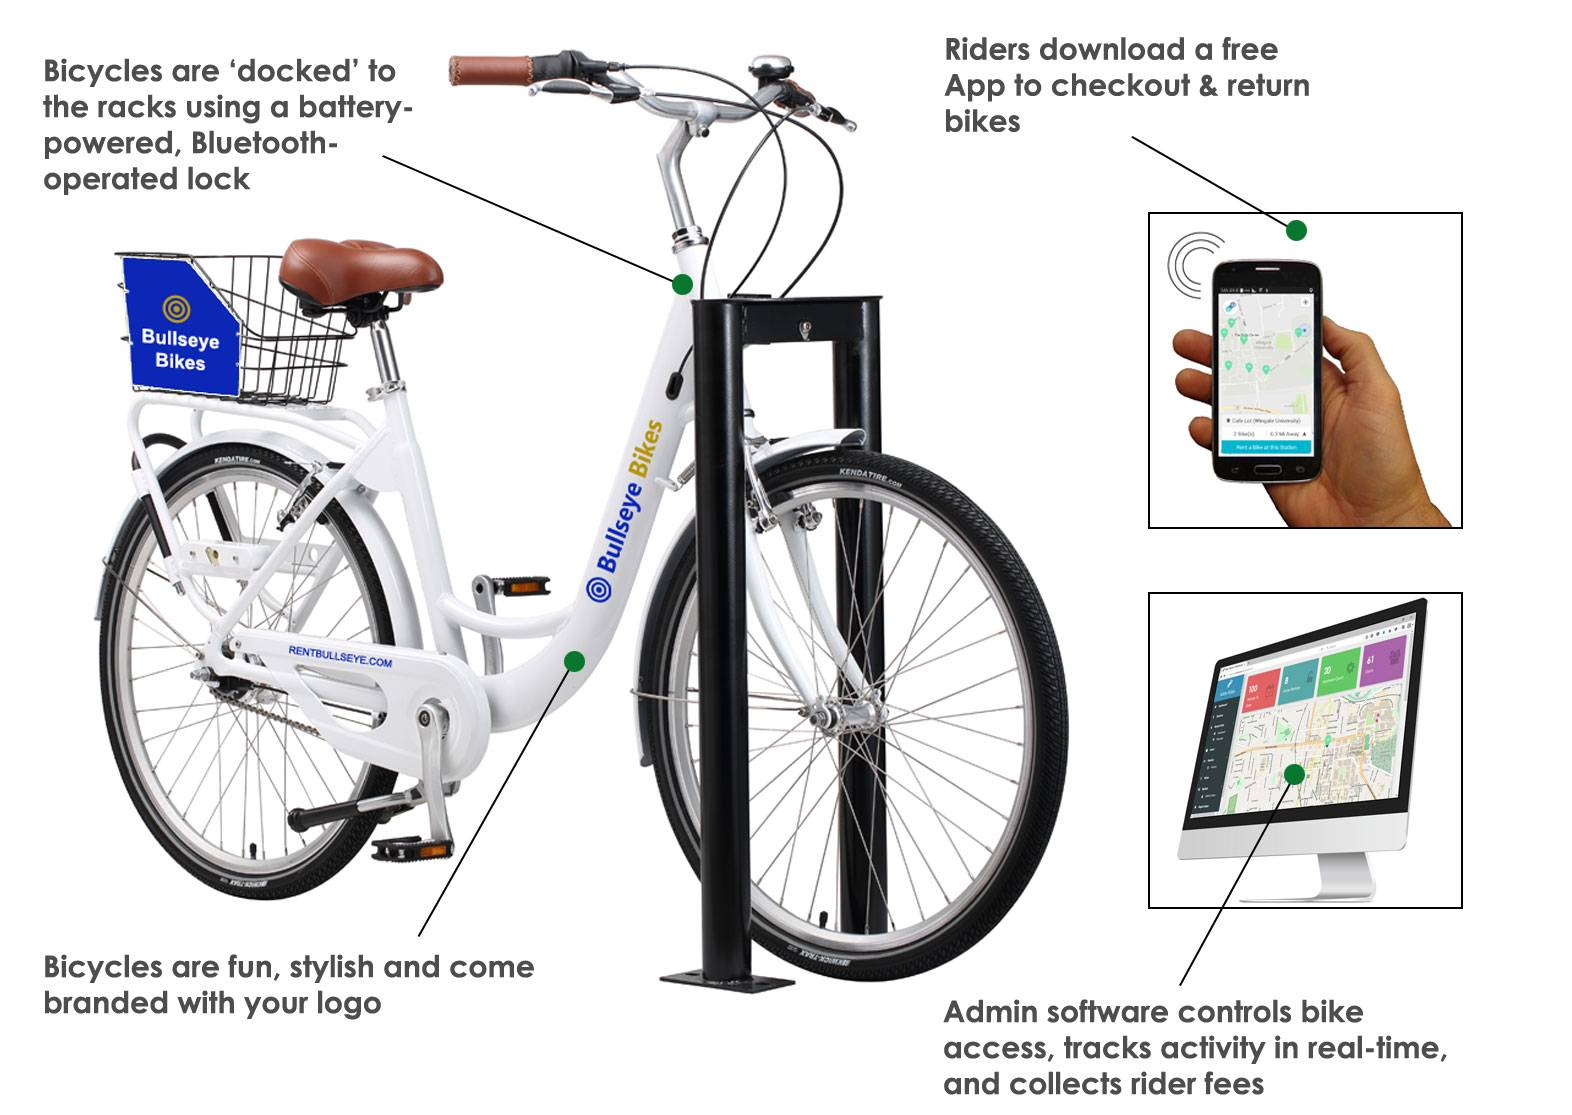 Bike Share system with 7-speed bicycle, docking racks, smartphone App and Admin software